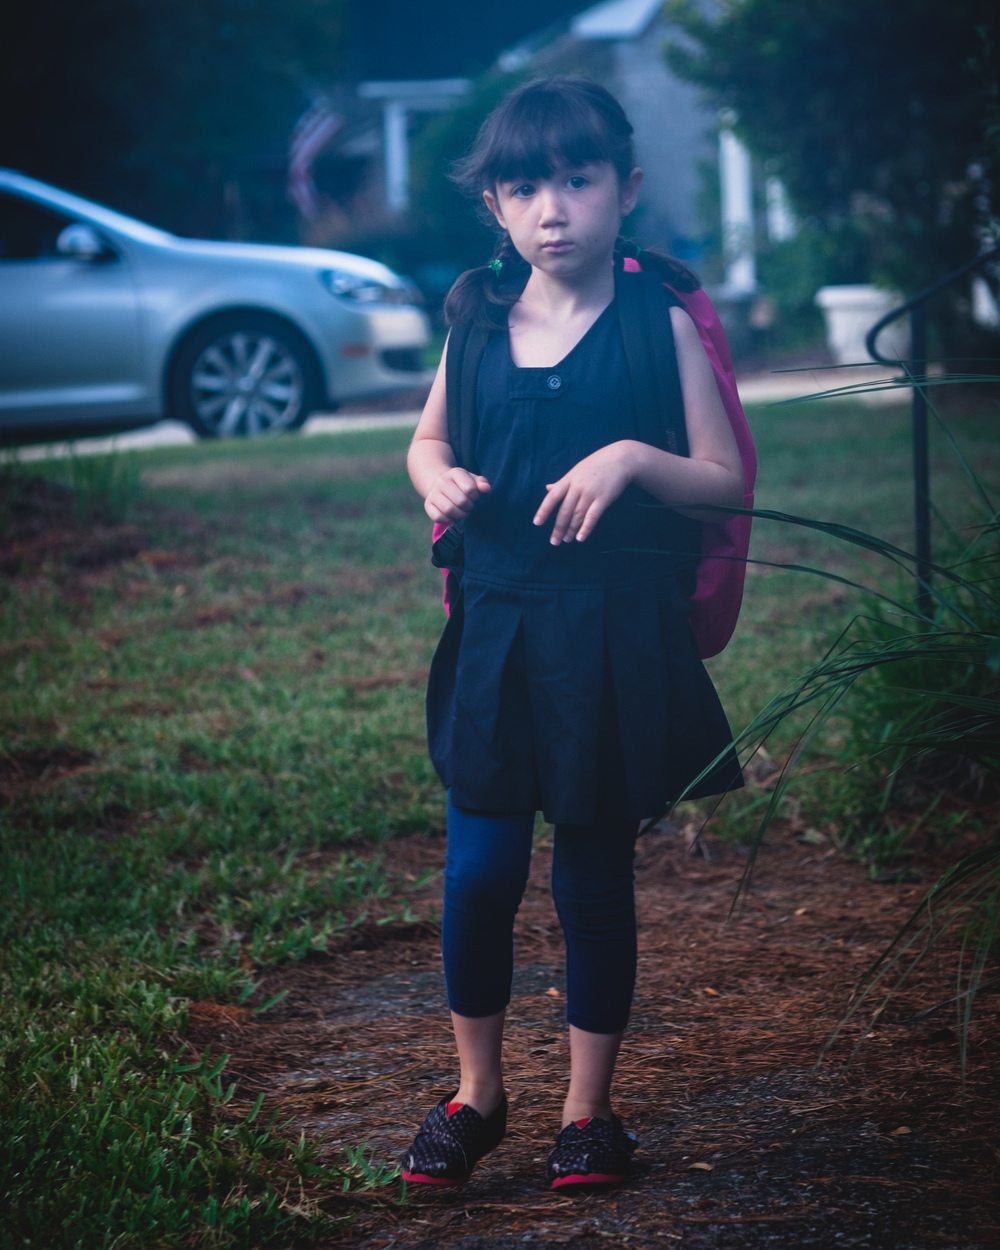 First day of school. First grade. (Humid morning filter)